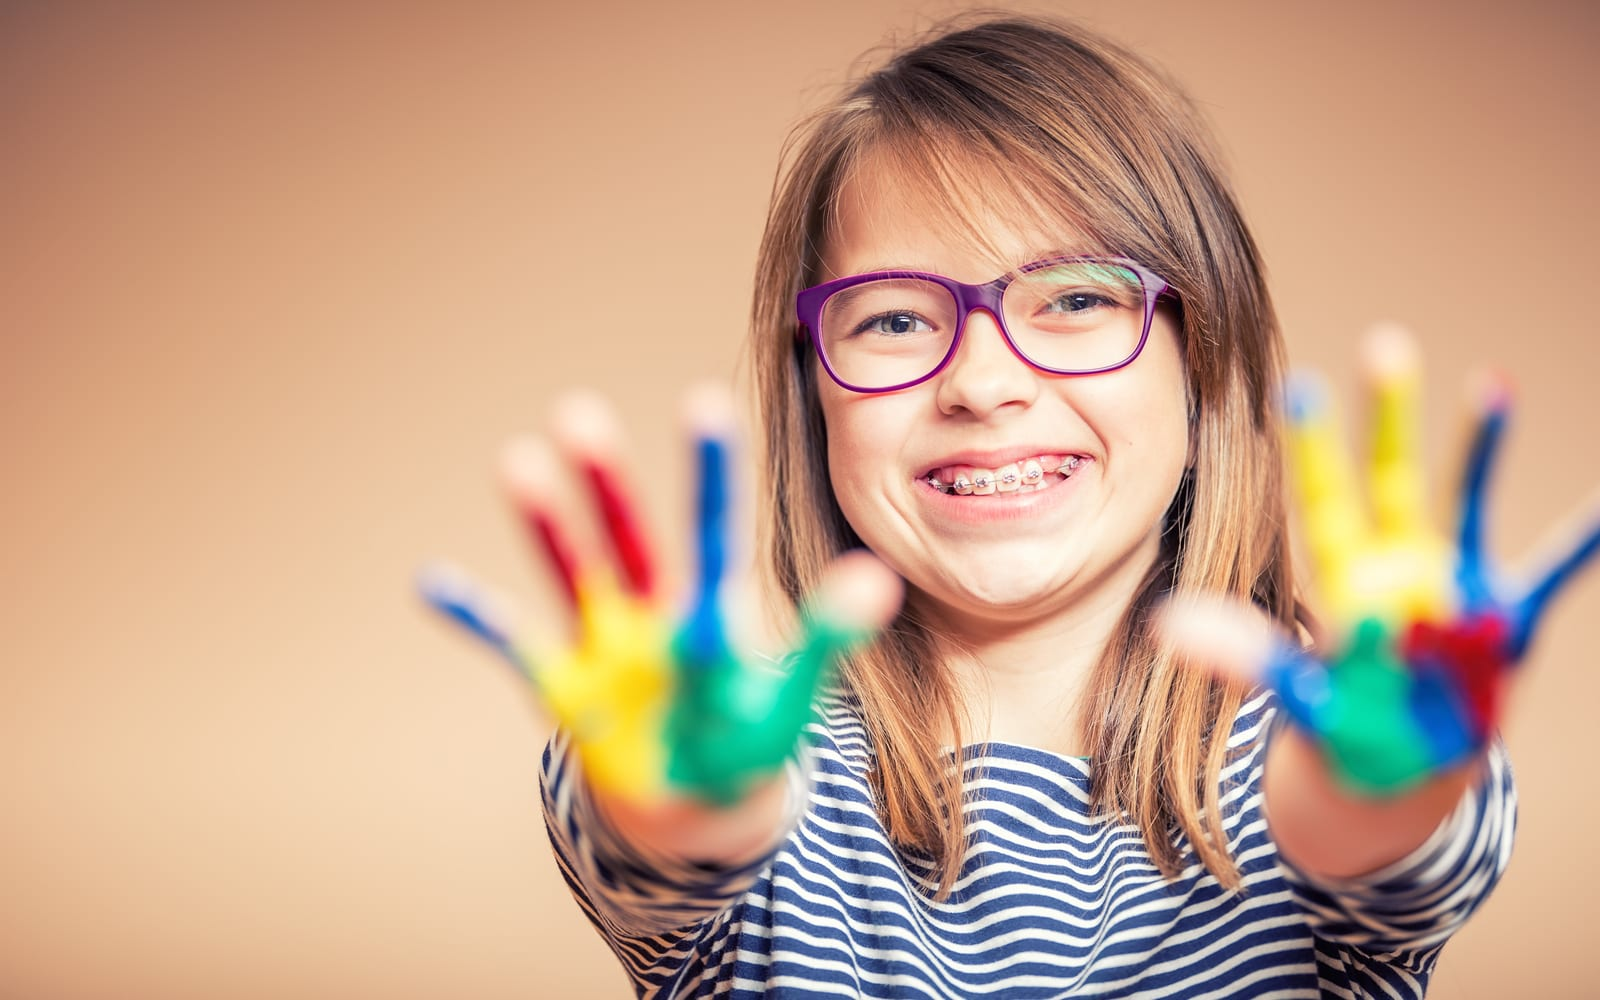 Child with braces and colored paint on hands